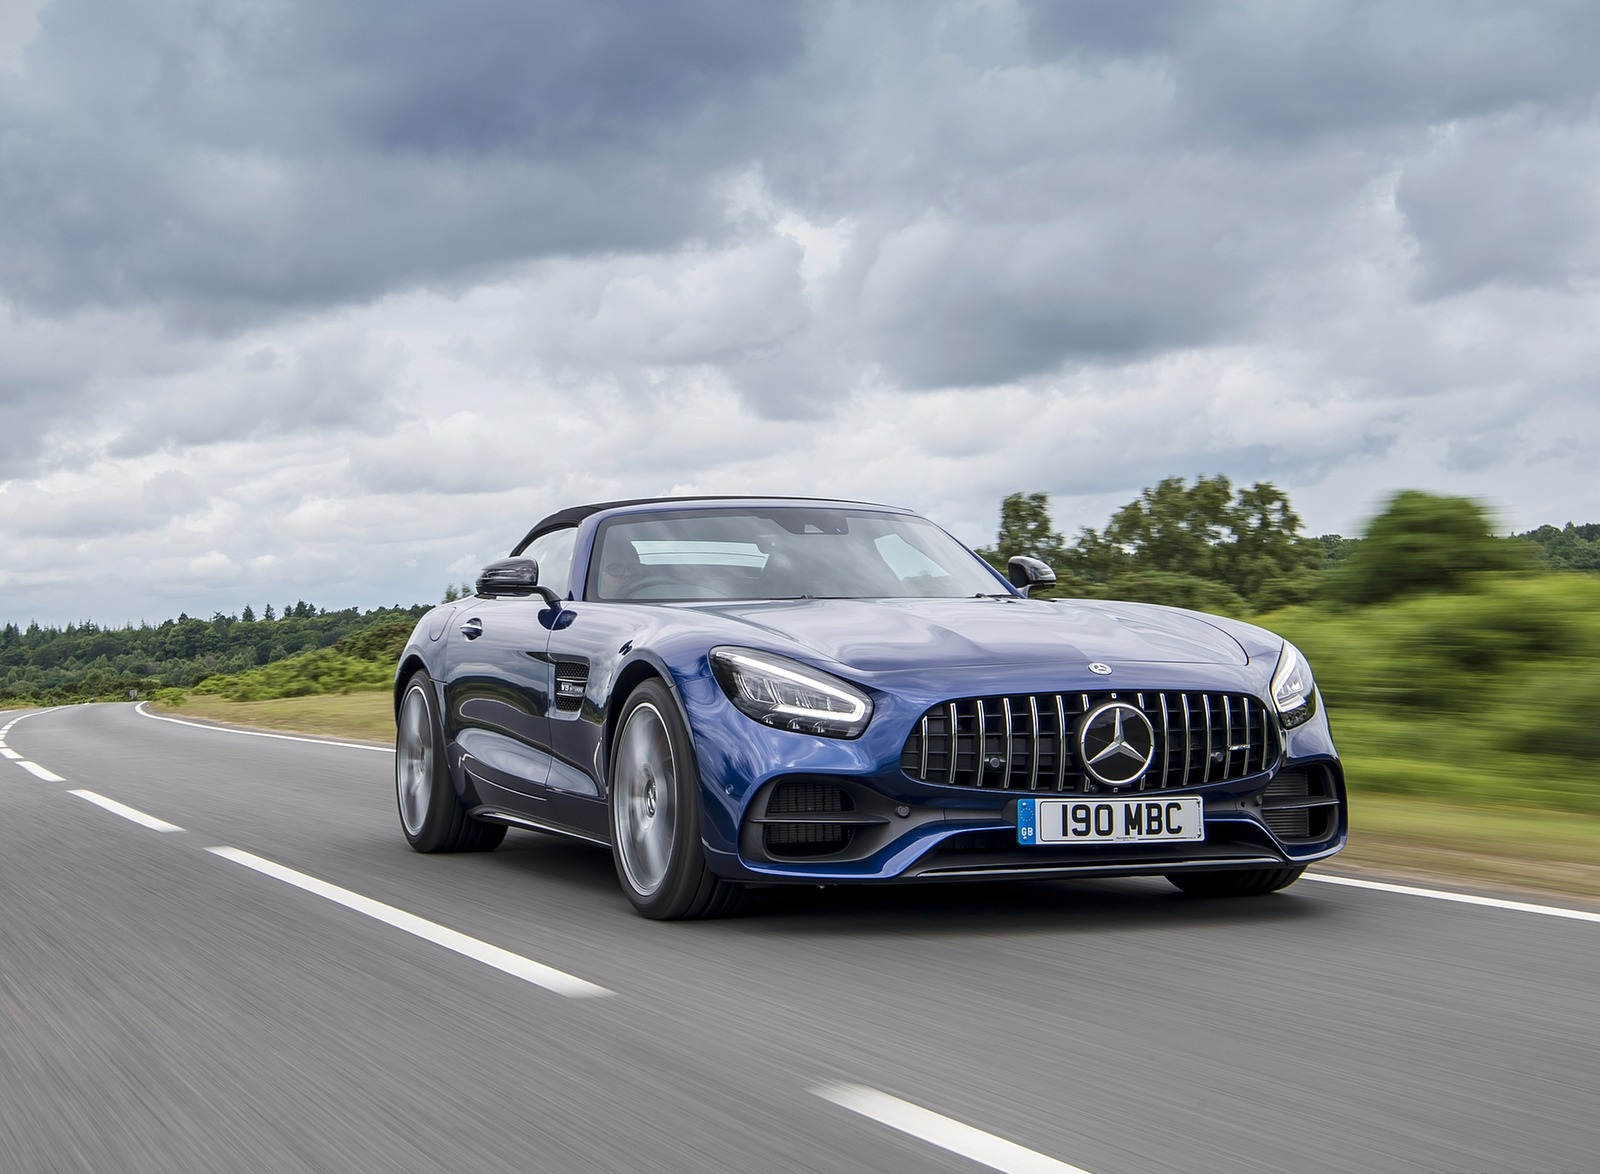 2020 Mercedes-AMG GT S Roadster (UK-Spec) Front Three-Quarter Wallpapers (15)